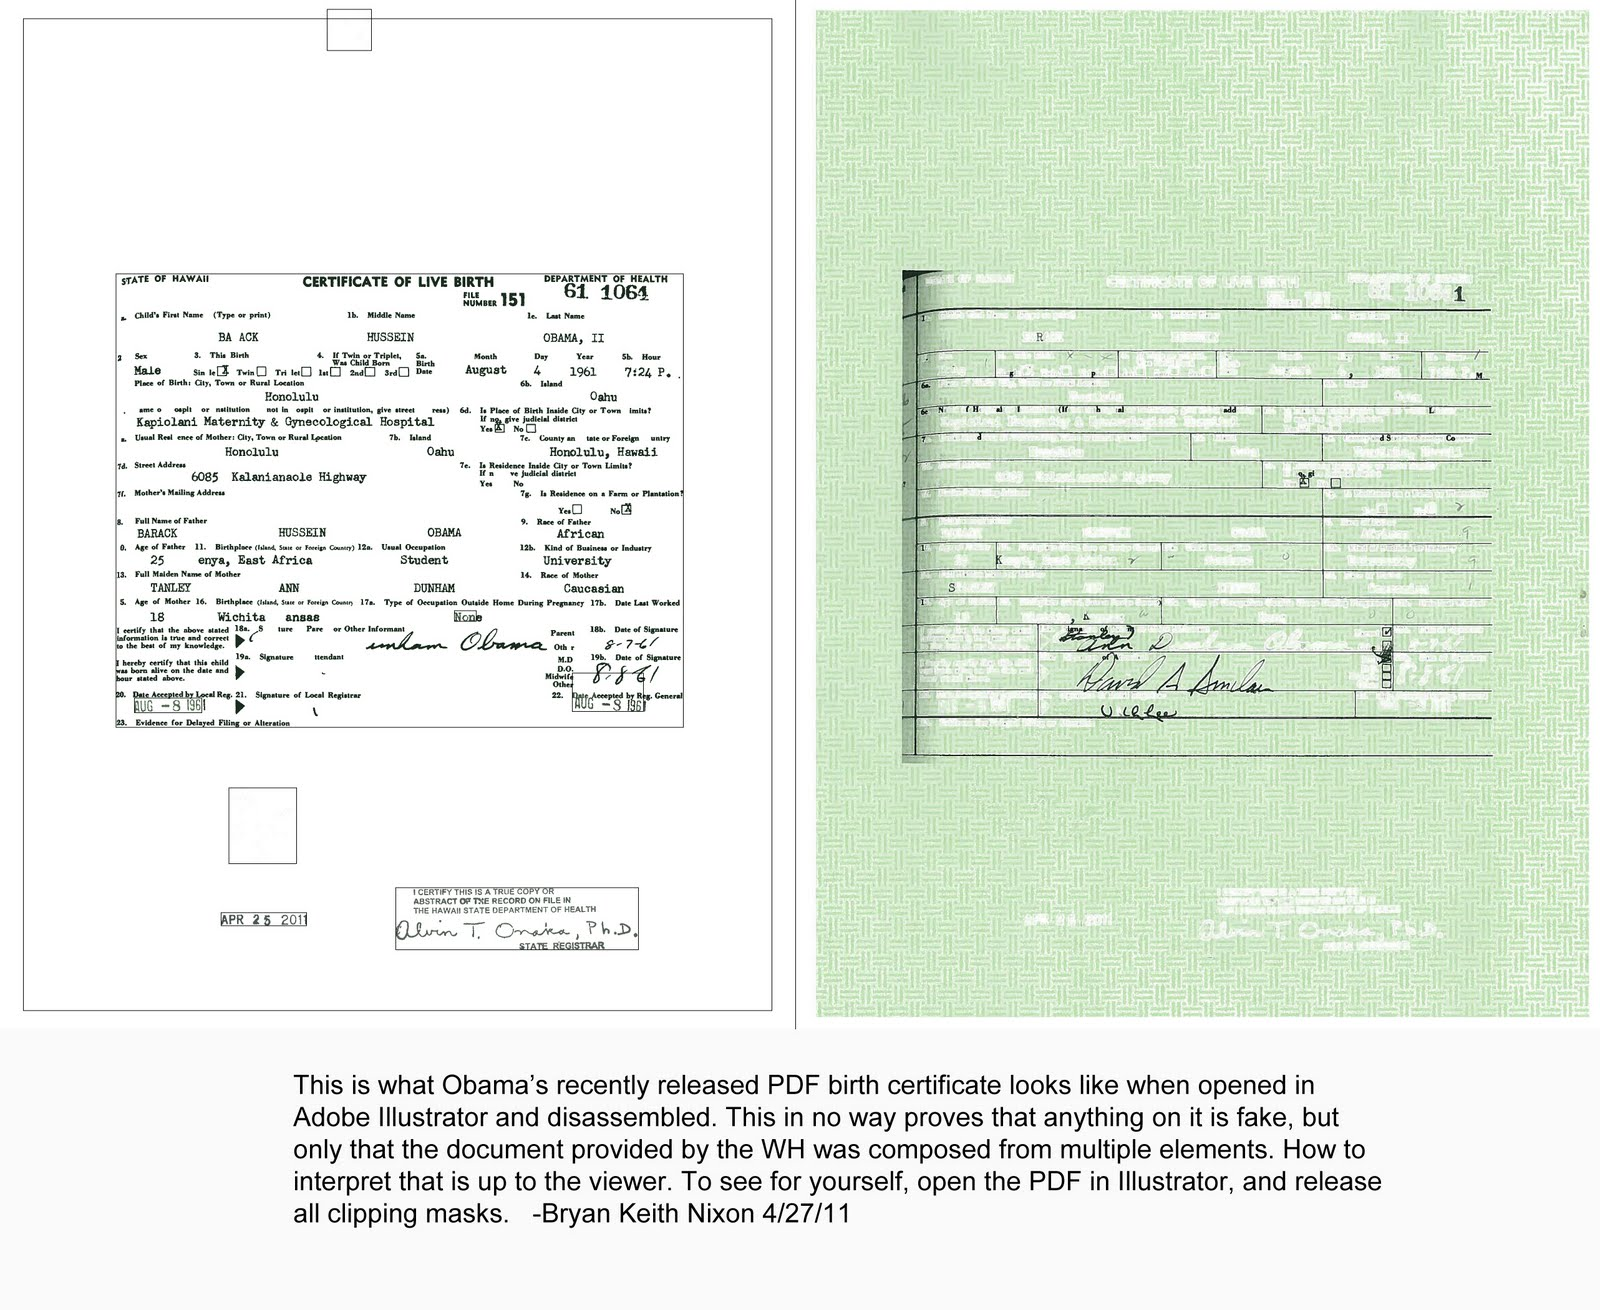 Blog smith obama real birth certificate released on april 22 obama requested the release of the long form birth certificate xflitez Image collections